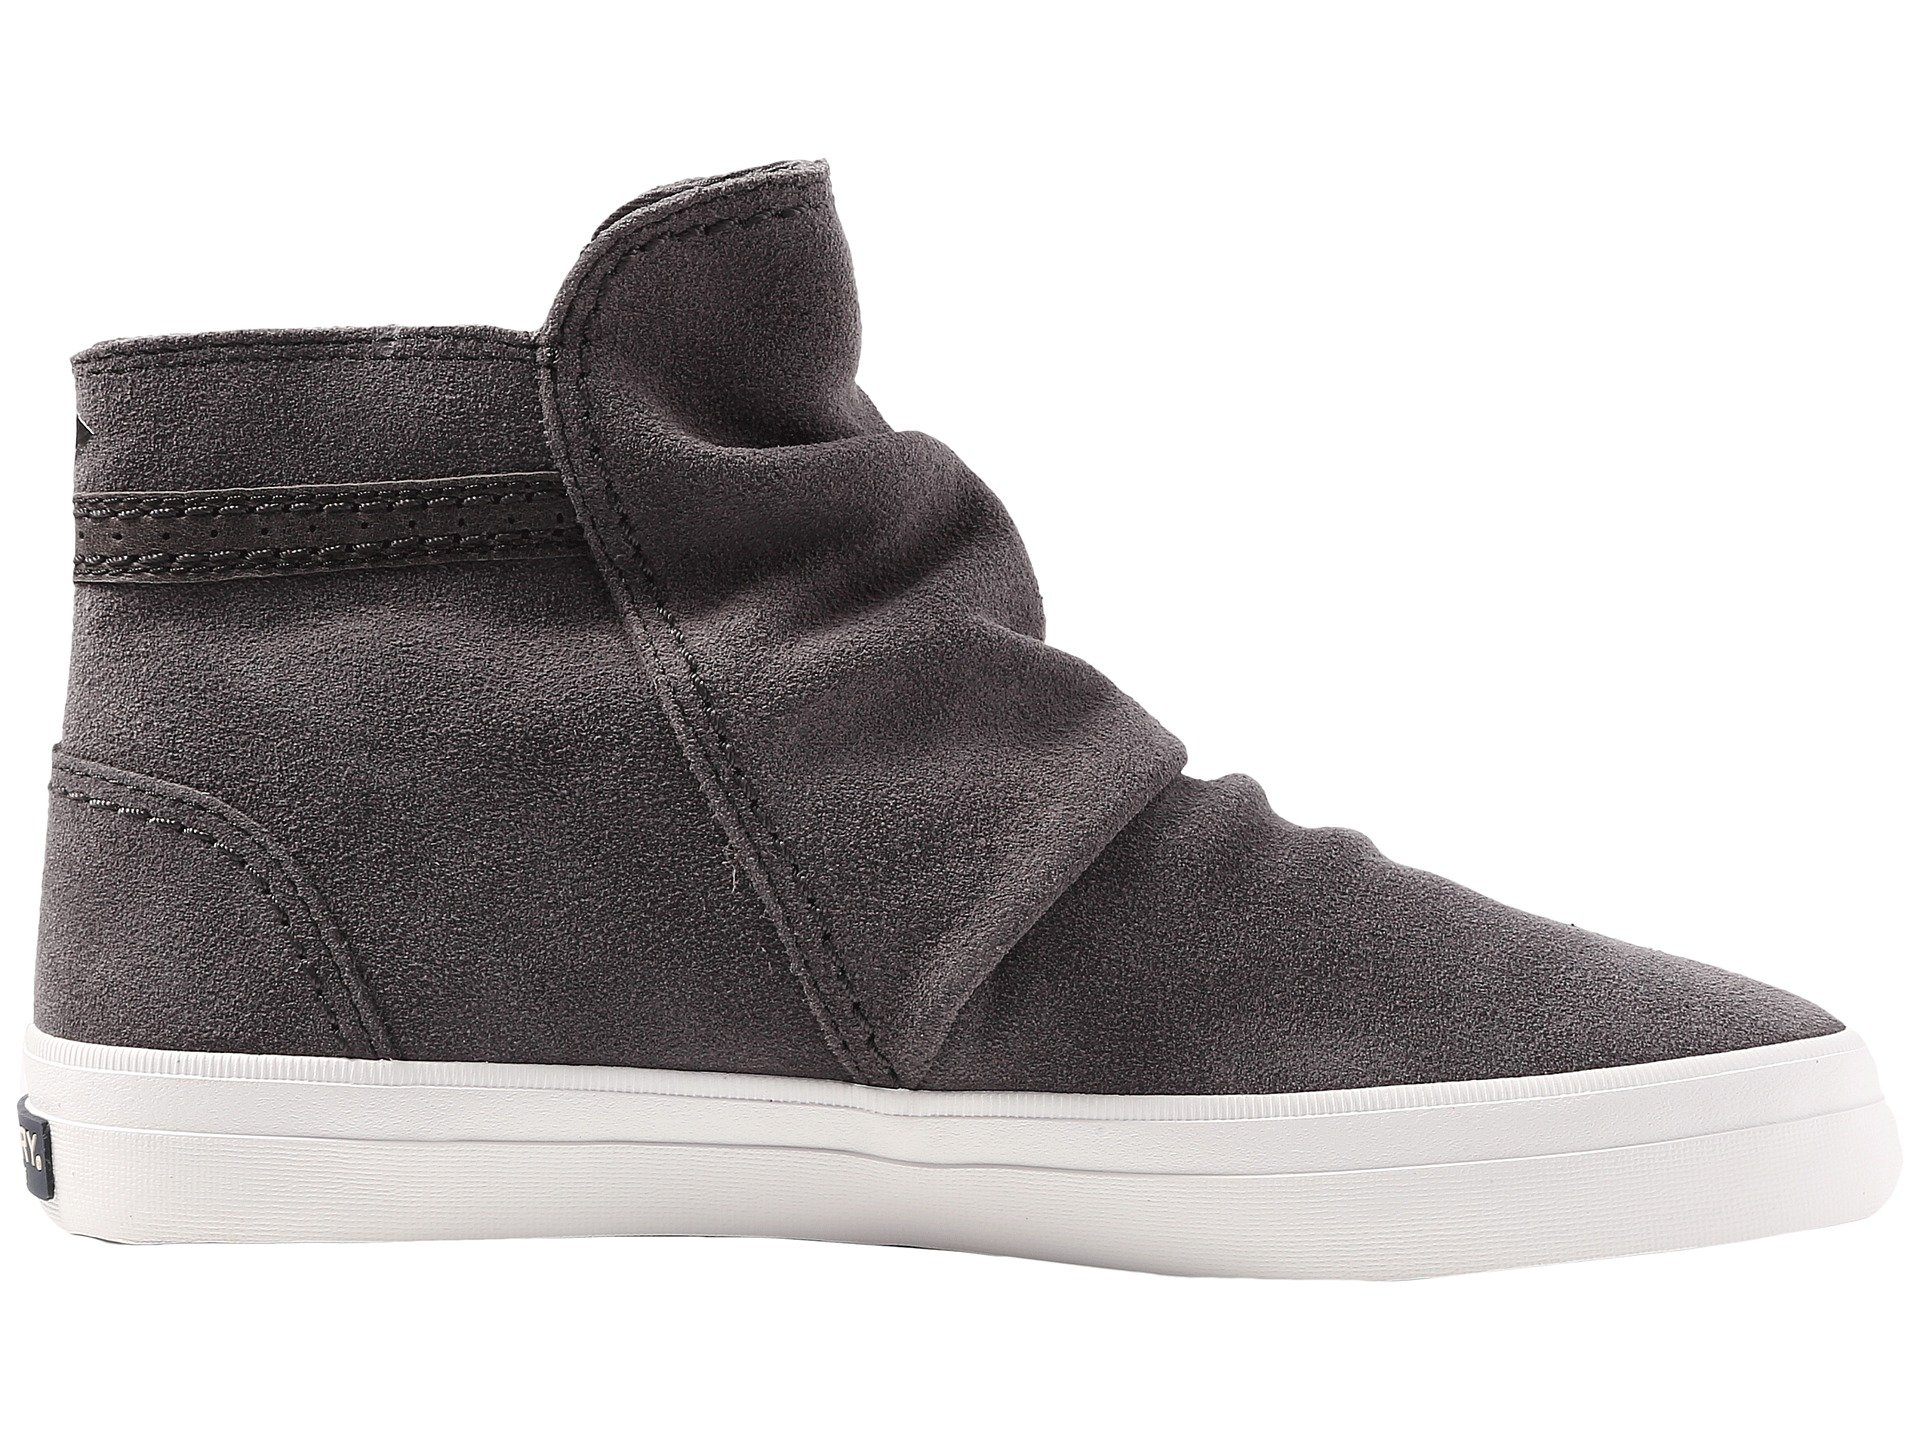 Sperry Crest Zone Waterproof Suede At Zappos Com